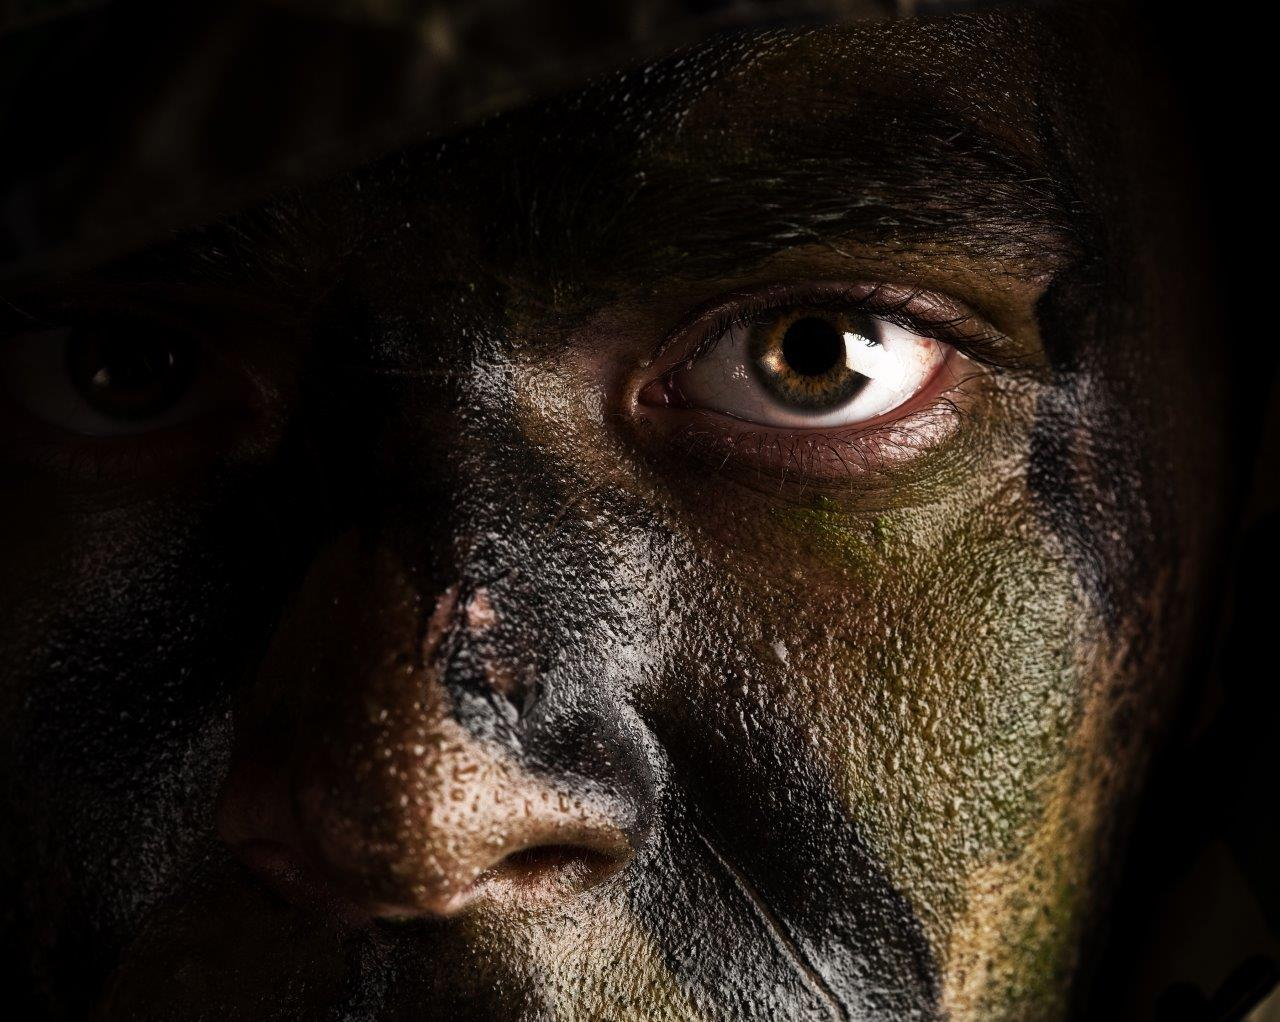 Close-up portrait of a man wearing camouflage face paint